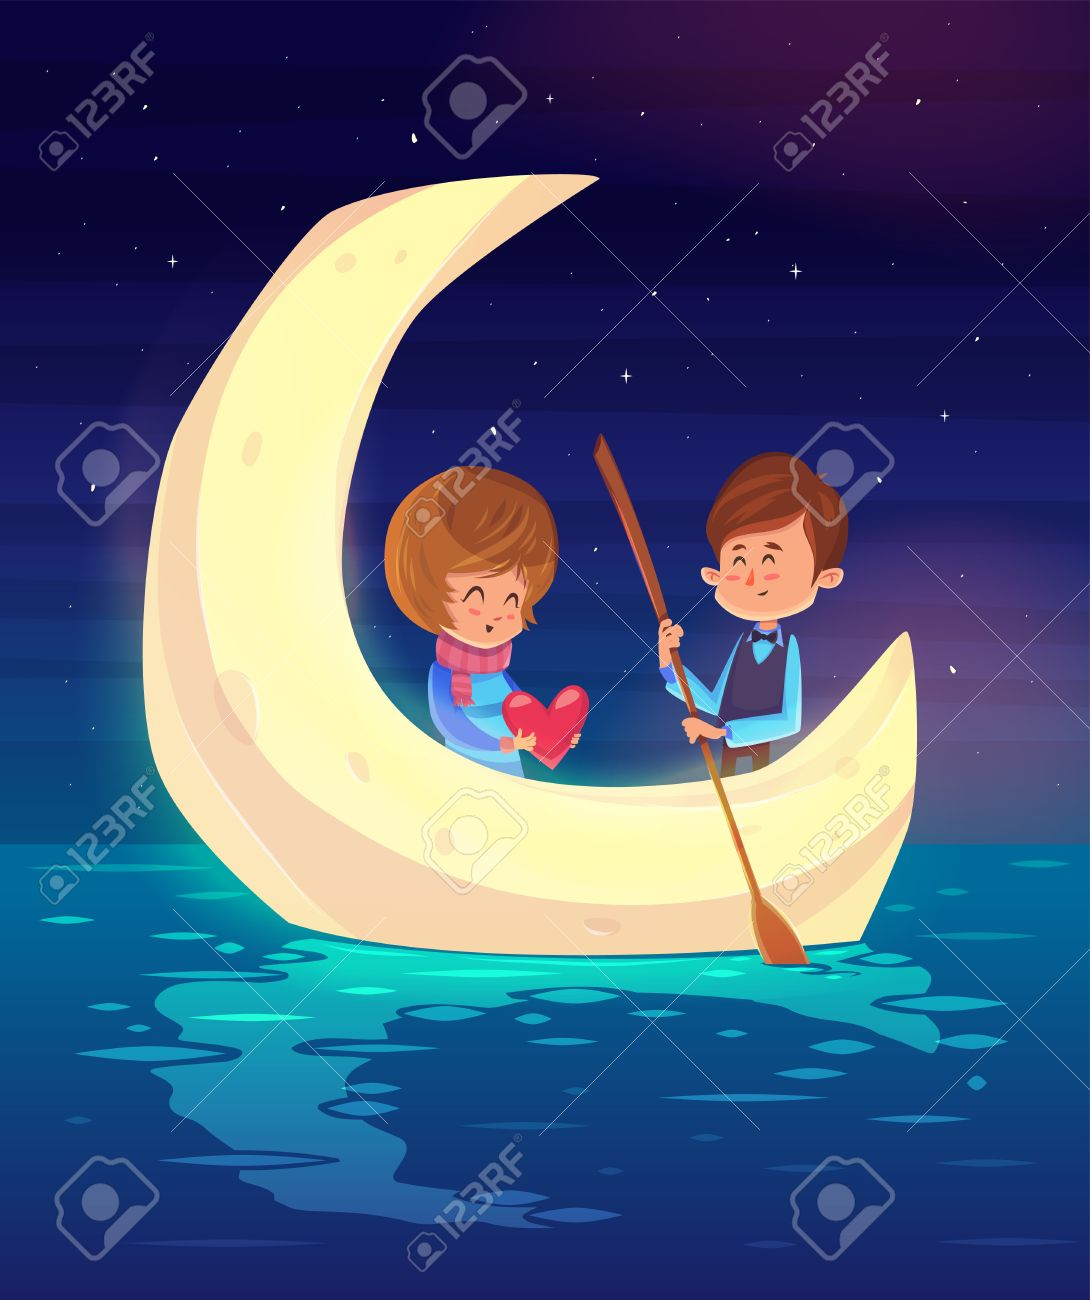 Couple girl and boy sitting in a boat on the background of the moon. Modern design stylish illustration. Retro flat background. Valentines Day Card. - 50571075